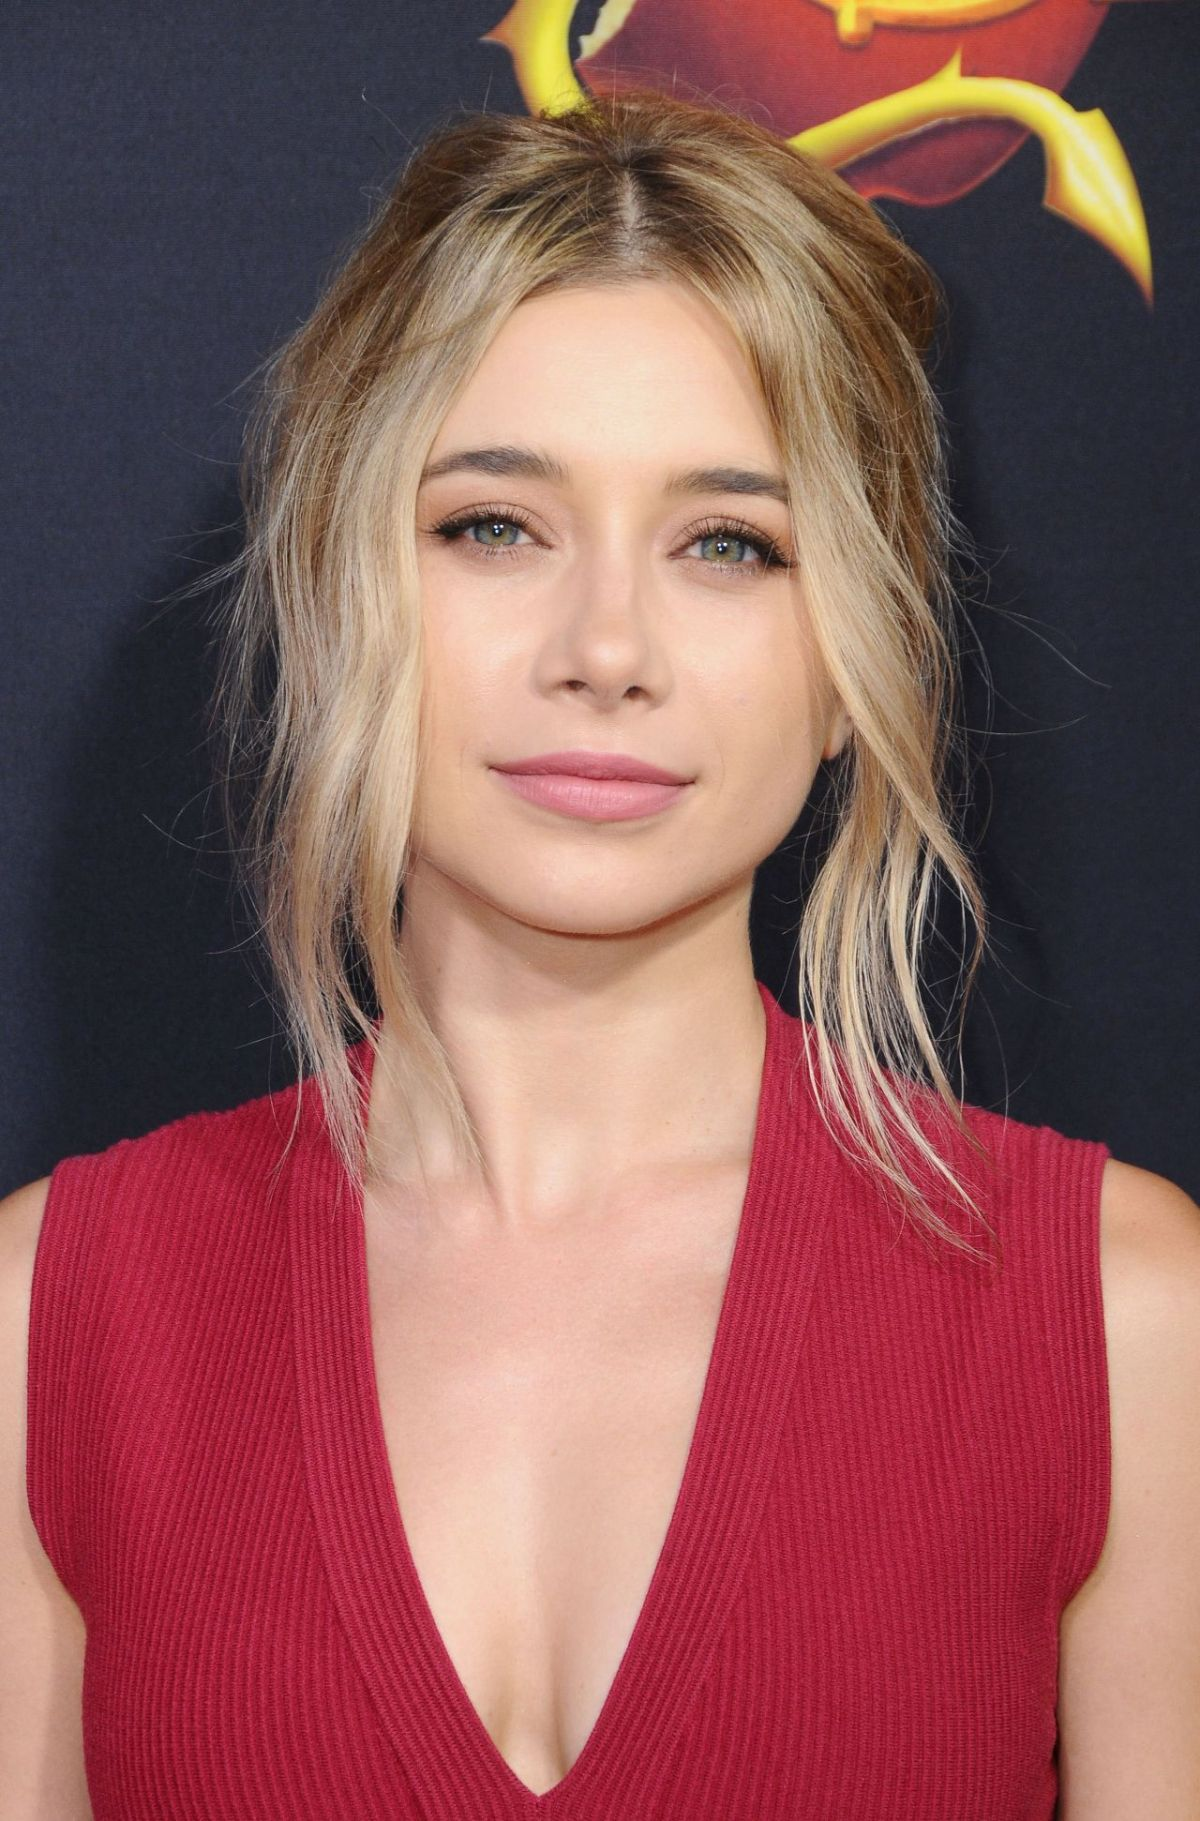 Olesya Rulin nudes (31 photo), images Topless, iCloud, underwear 2020